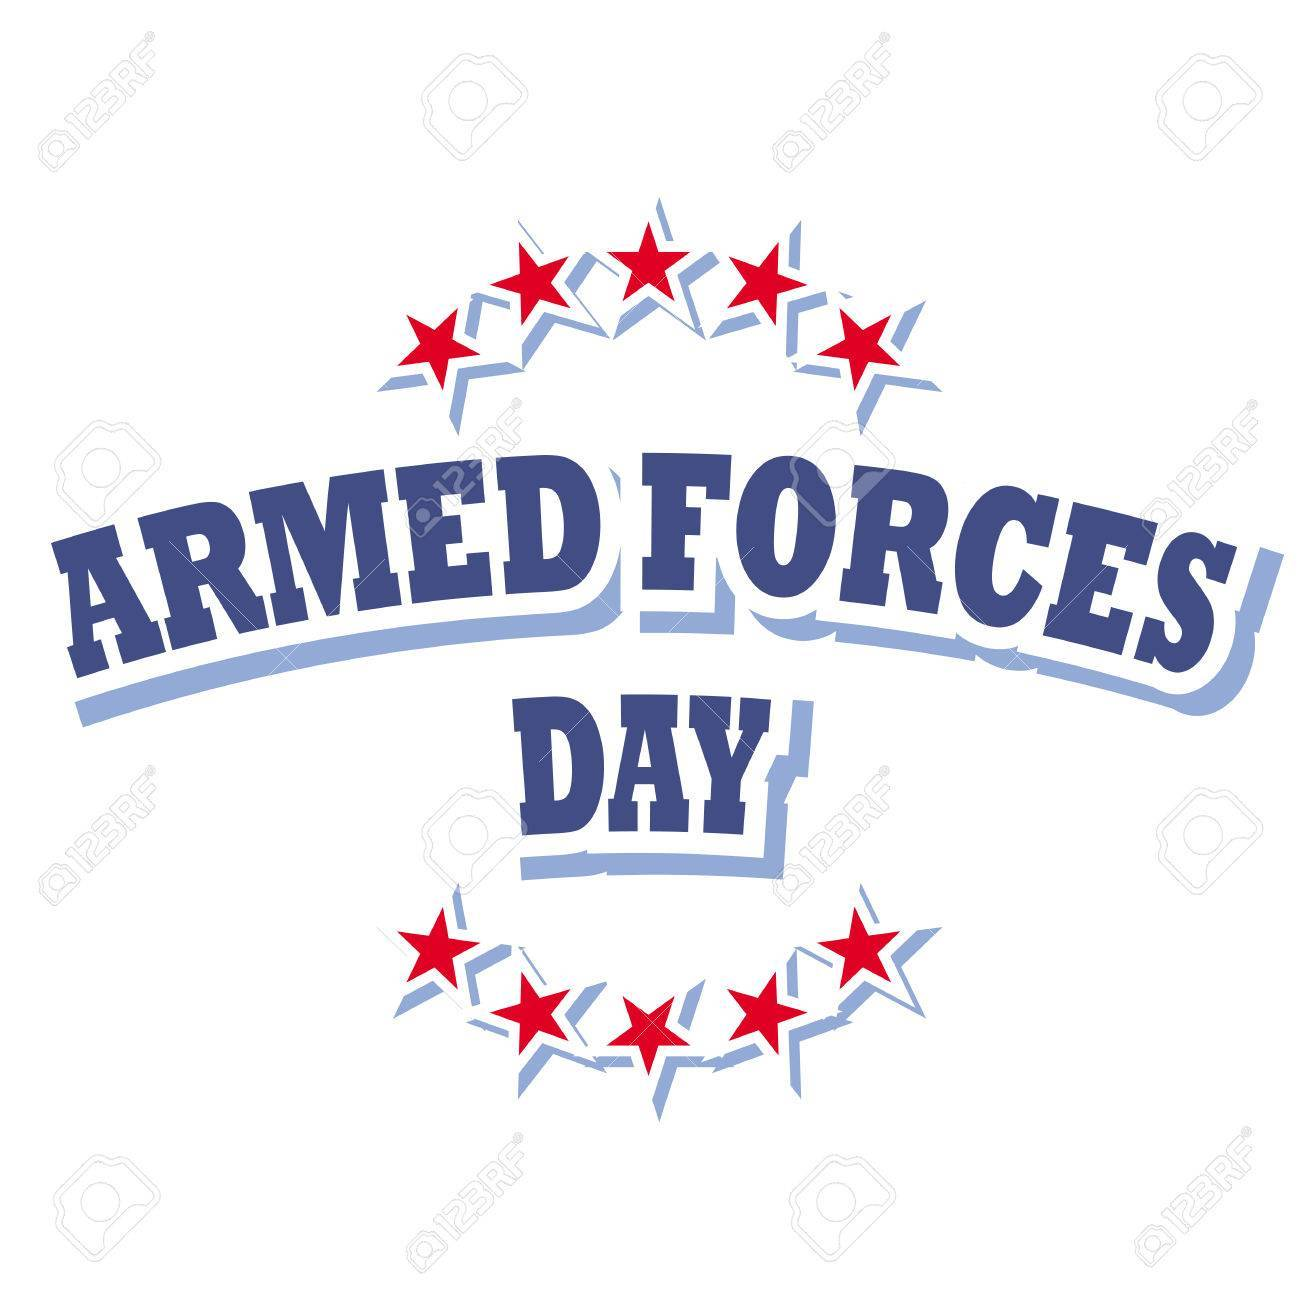 Free clipart armed forces day 2 » Clipart Portal.